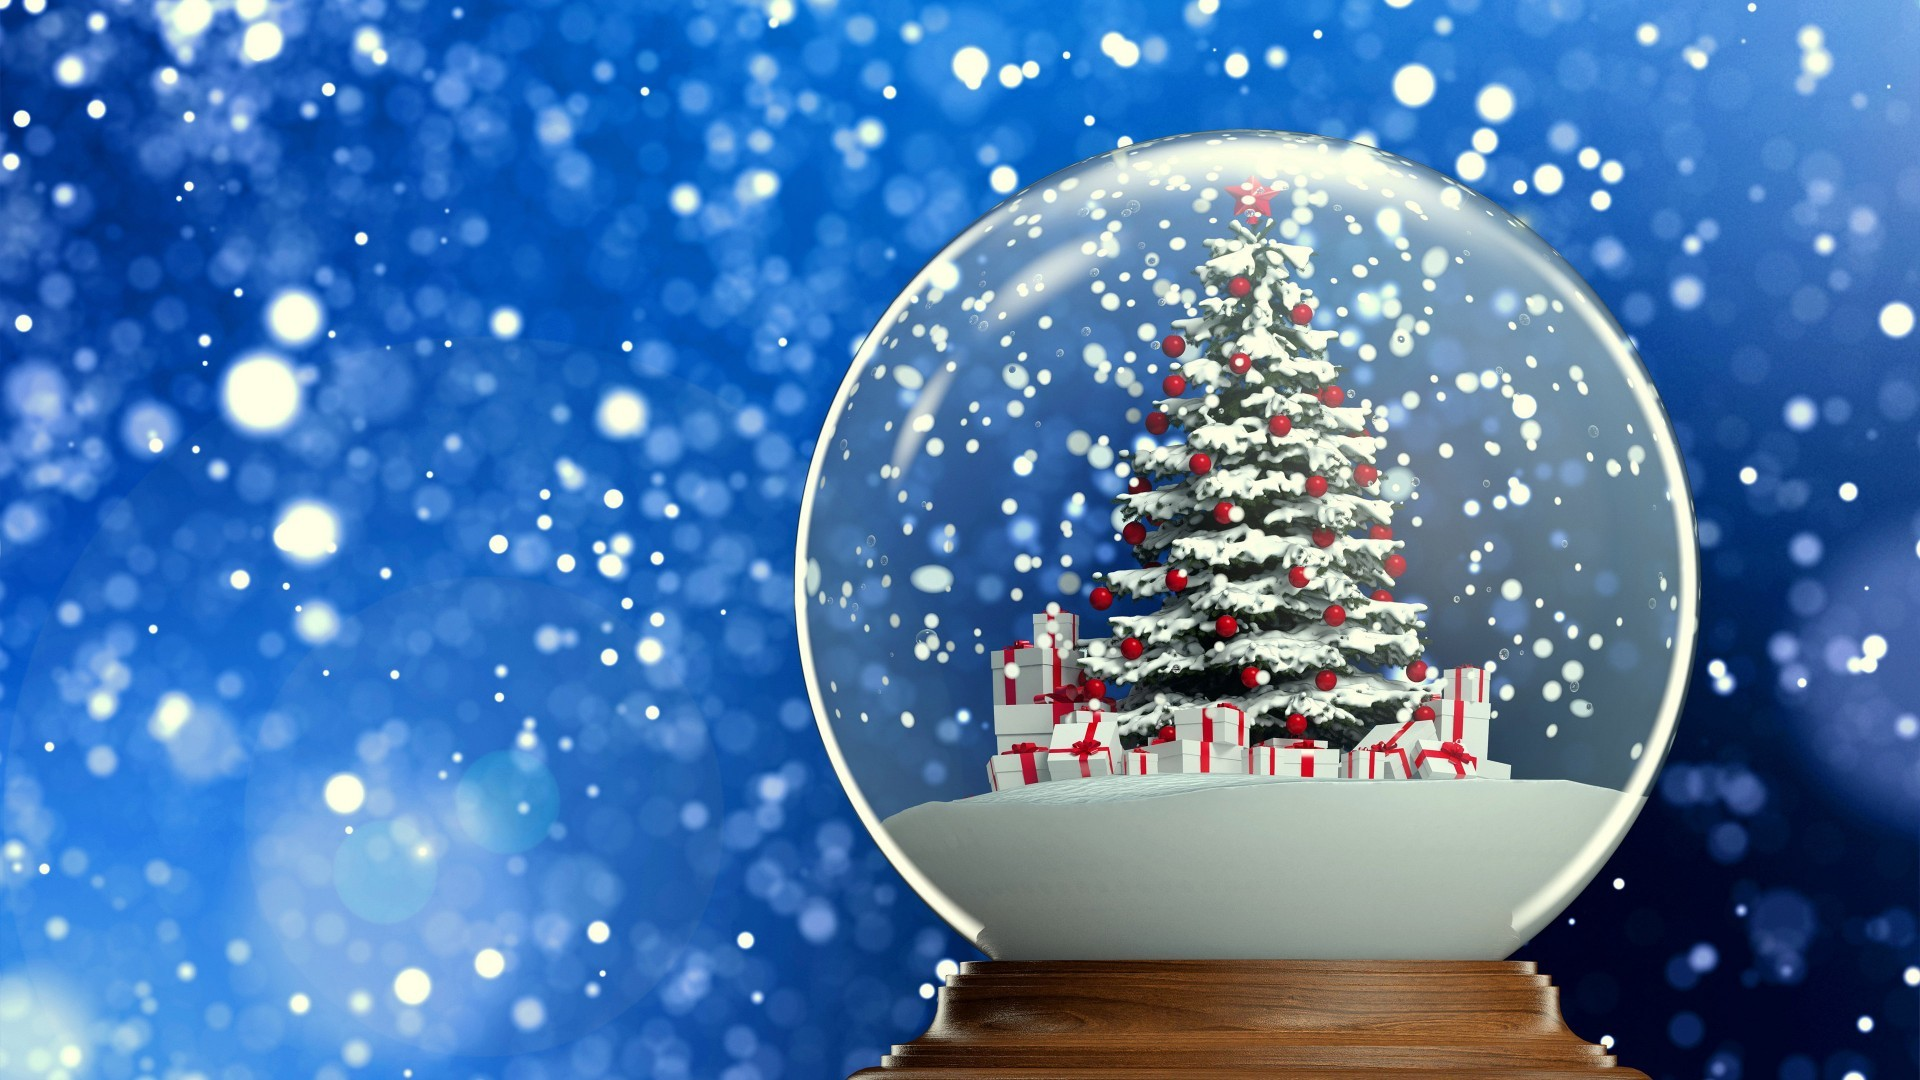 Christmas Hd Wallpaper Iphone.Christmas Wallpapers Tumblr 75 Background Pictures